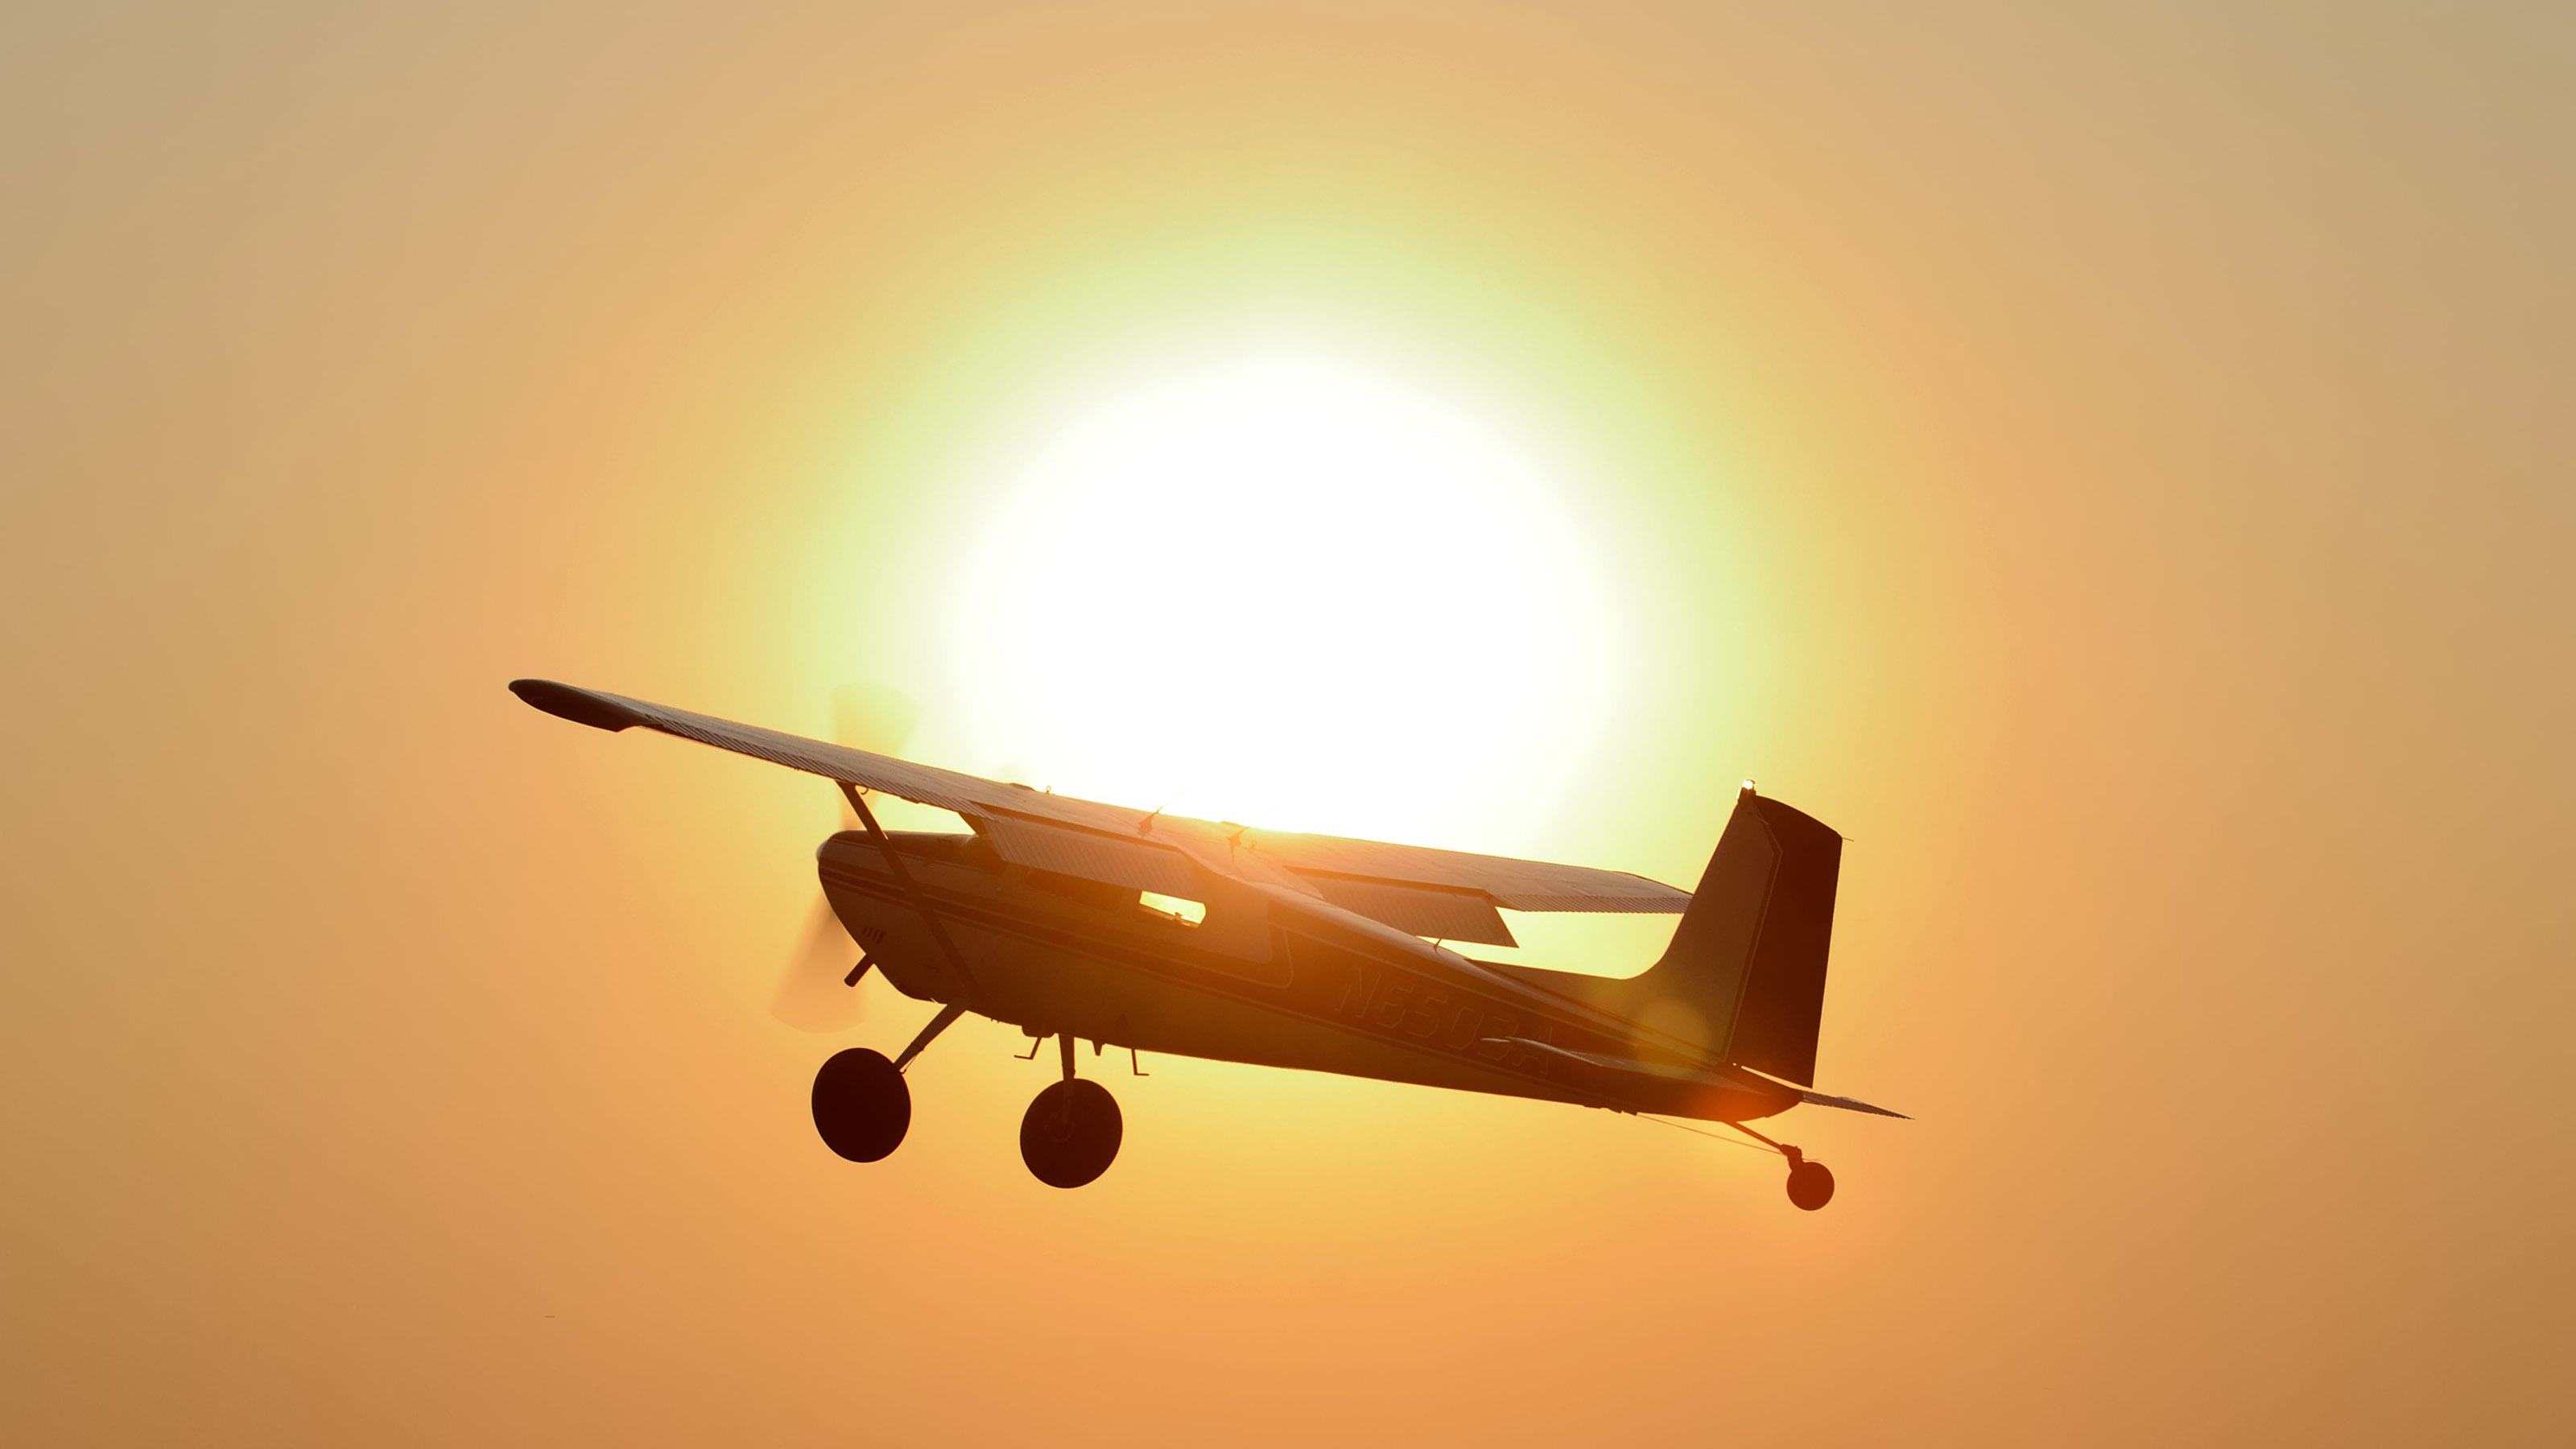 A Cessna 180 climbs past the setting sun during the short takeoff and landing (STOL) demonstration held Friday evening at AOPA's 2017 Norman Fly-In. Photo by Mike Collins.